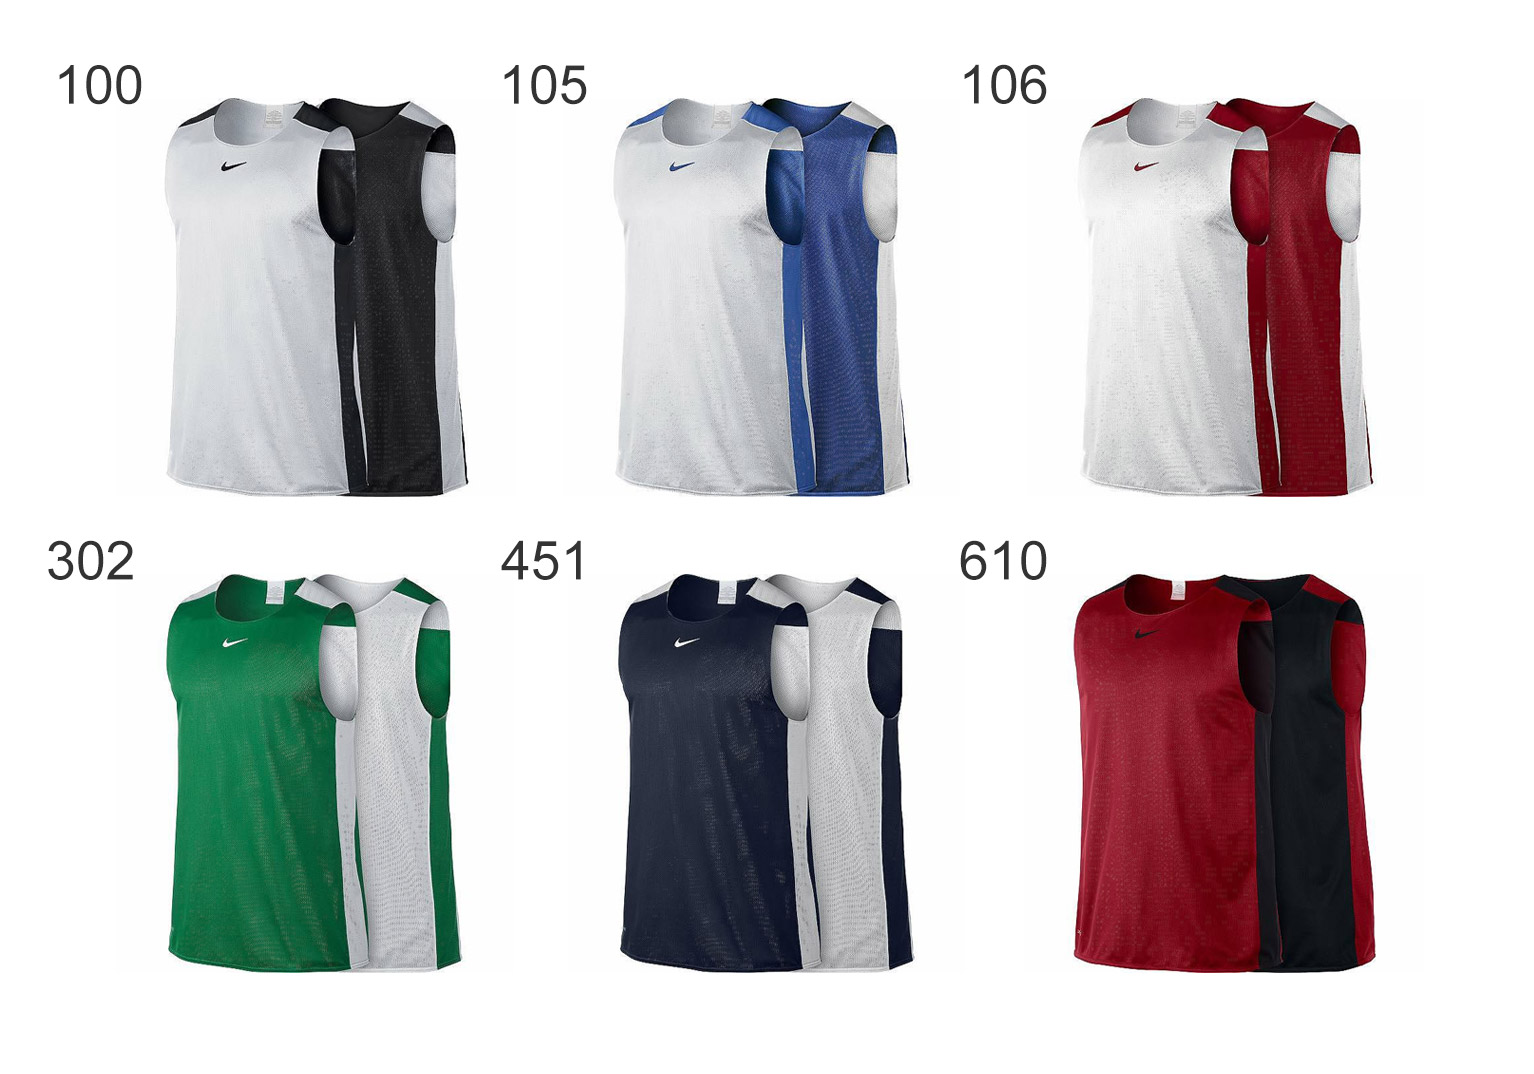 competitive price d8f66 a1bca NIKE (Nike) basketball Nike League reversible tank